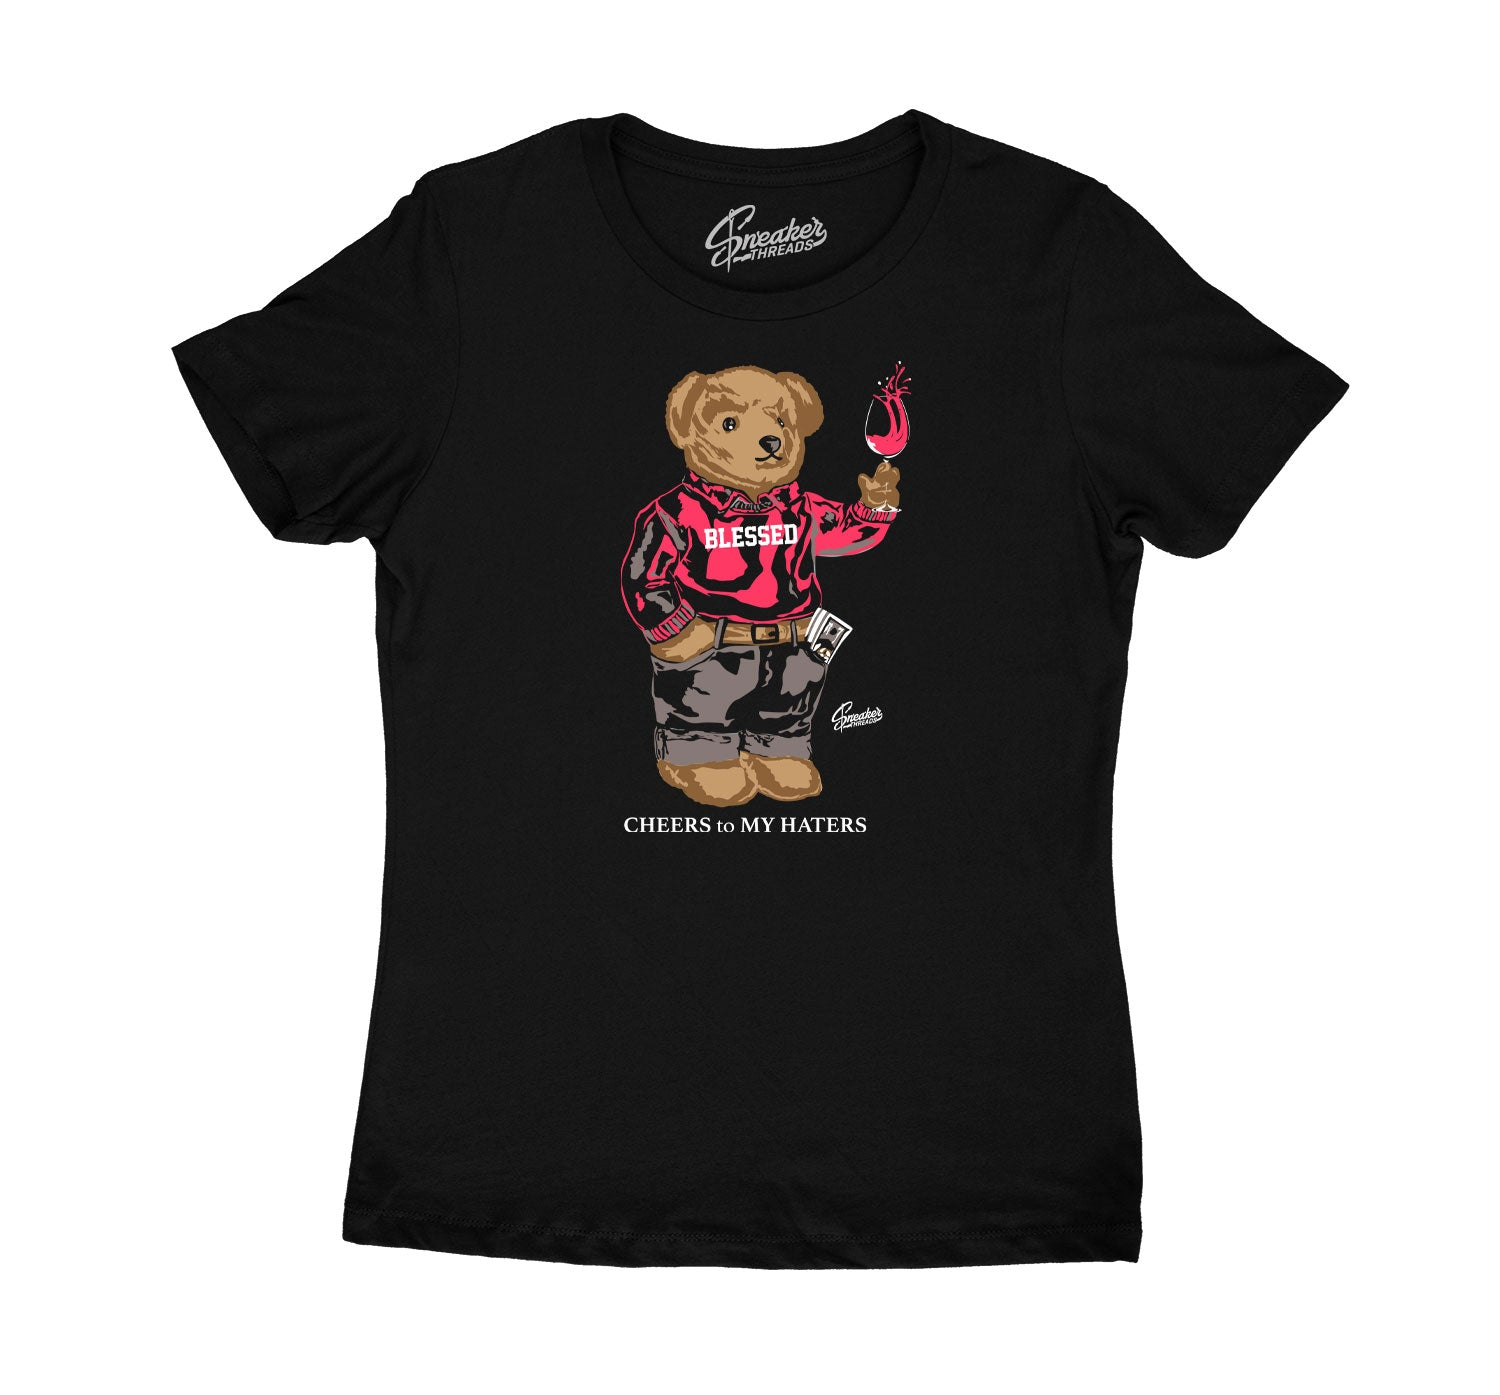 Taupe Haze Jordan 4 sneaker collection matches with girls t shirt